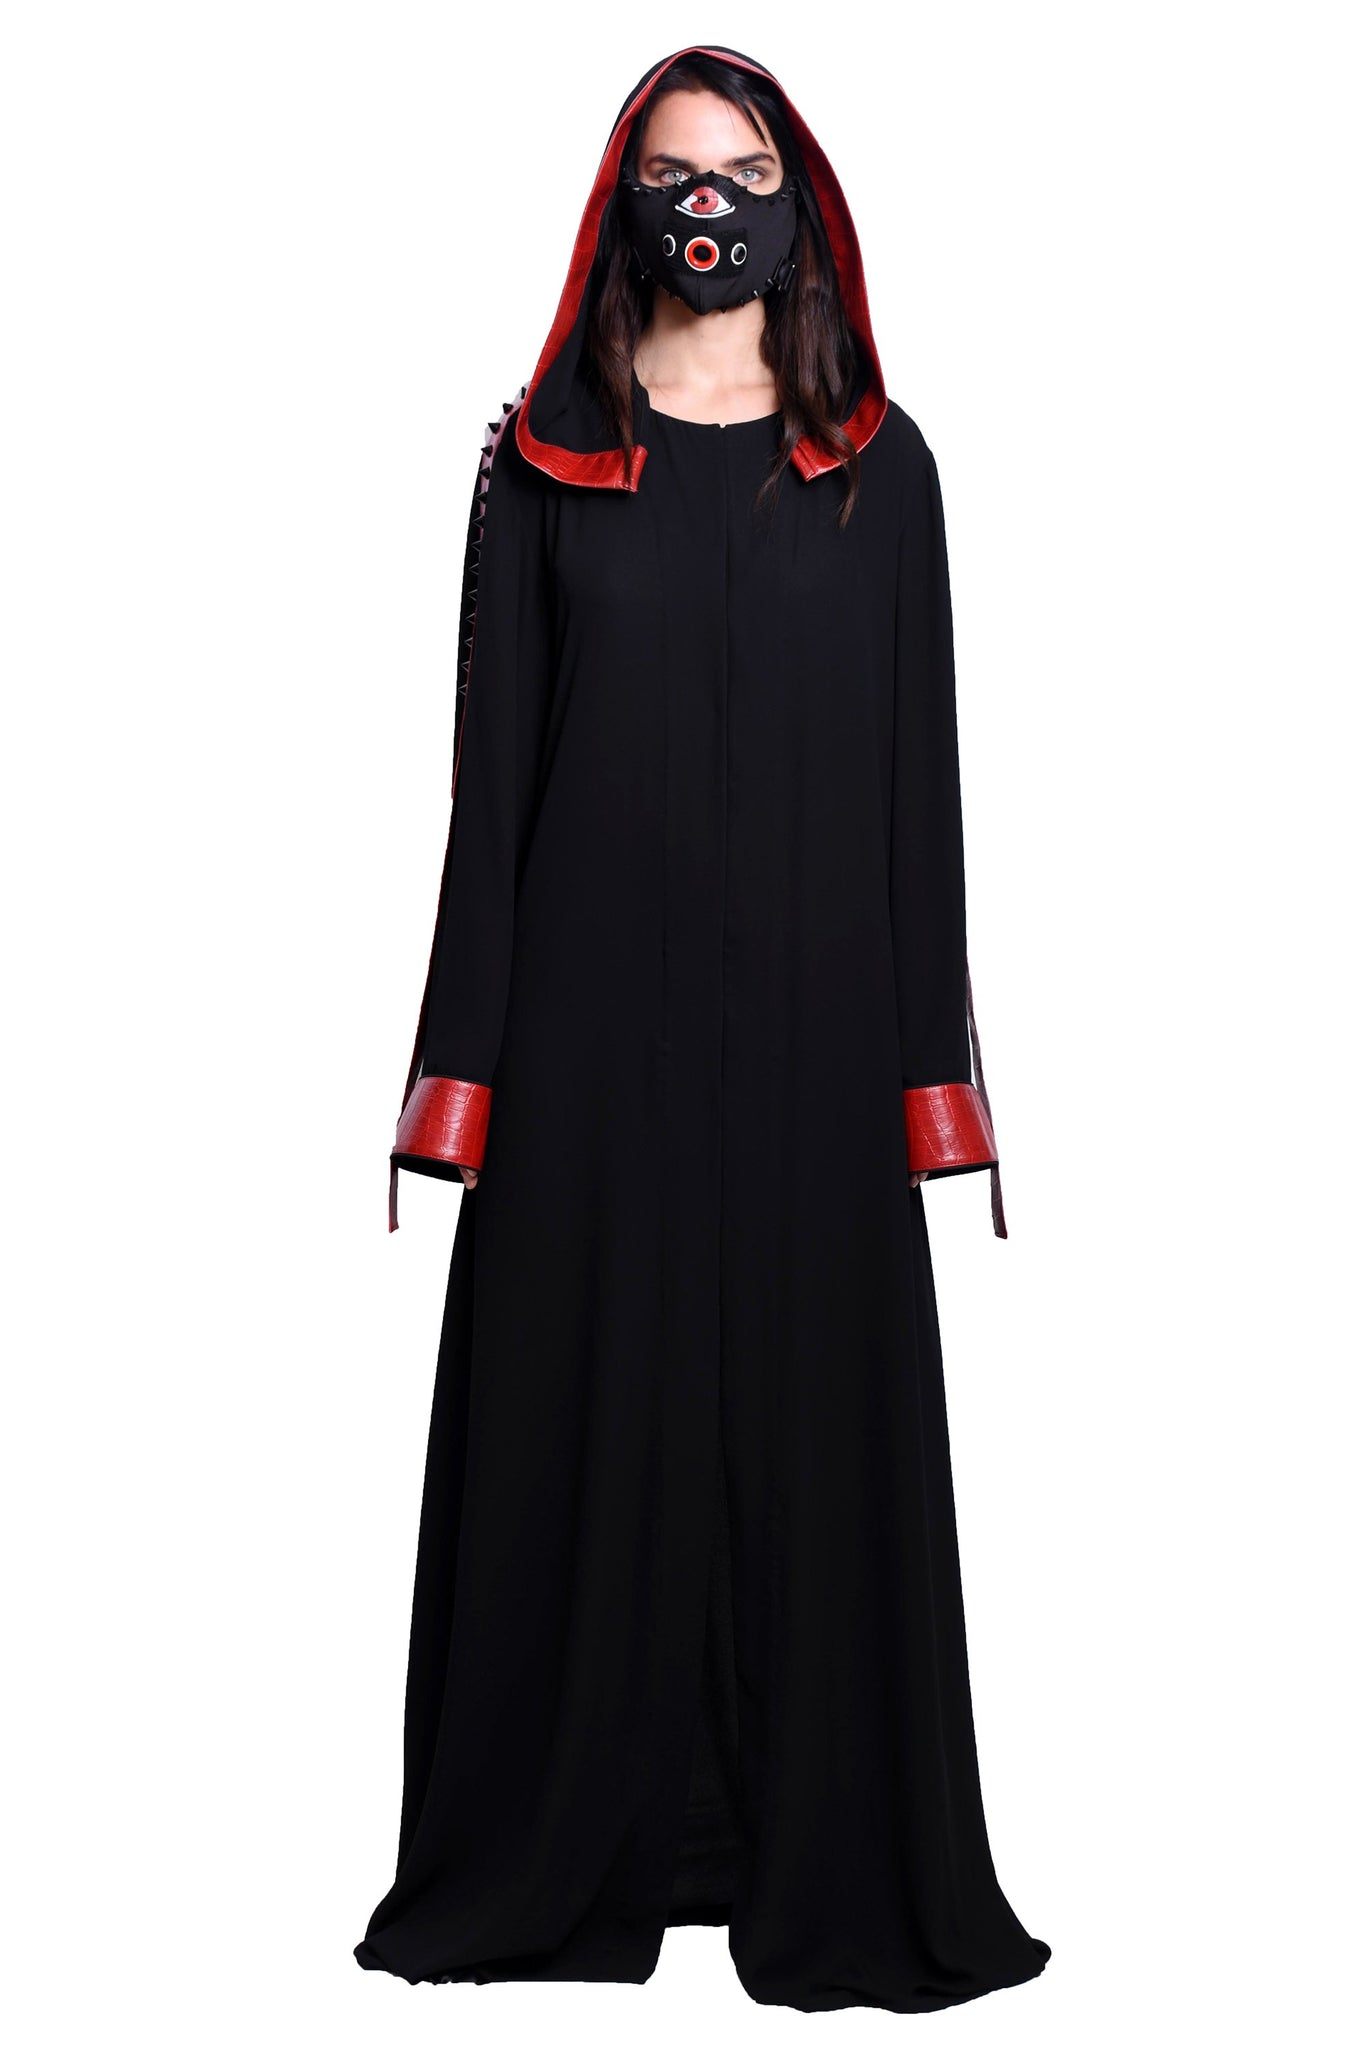 Extremedy-Mask-Abaya-uae